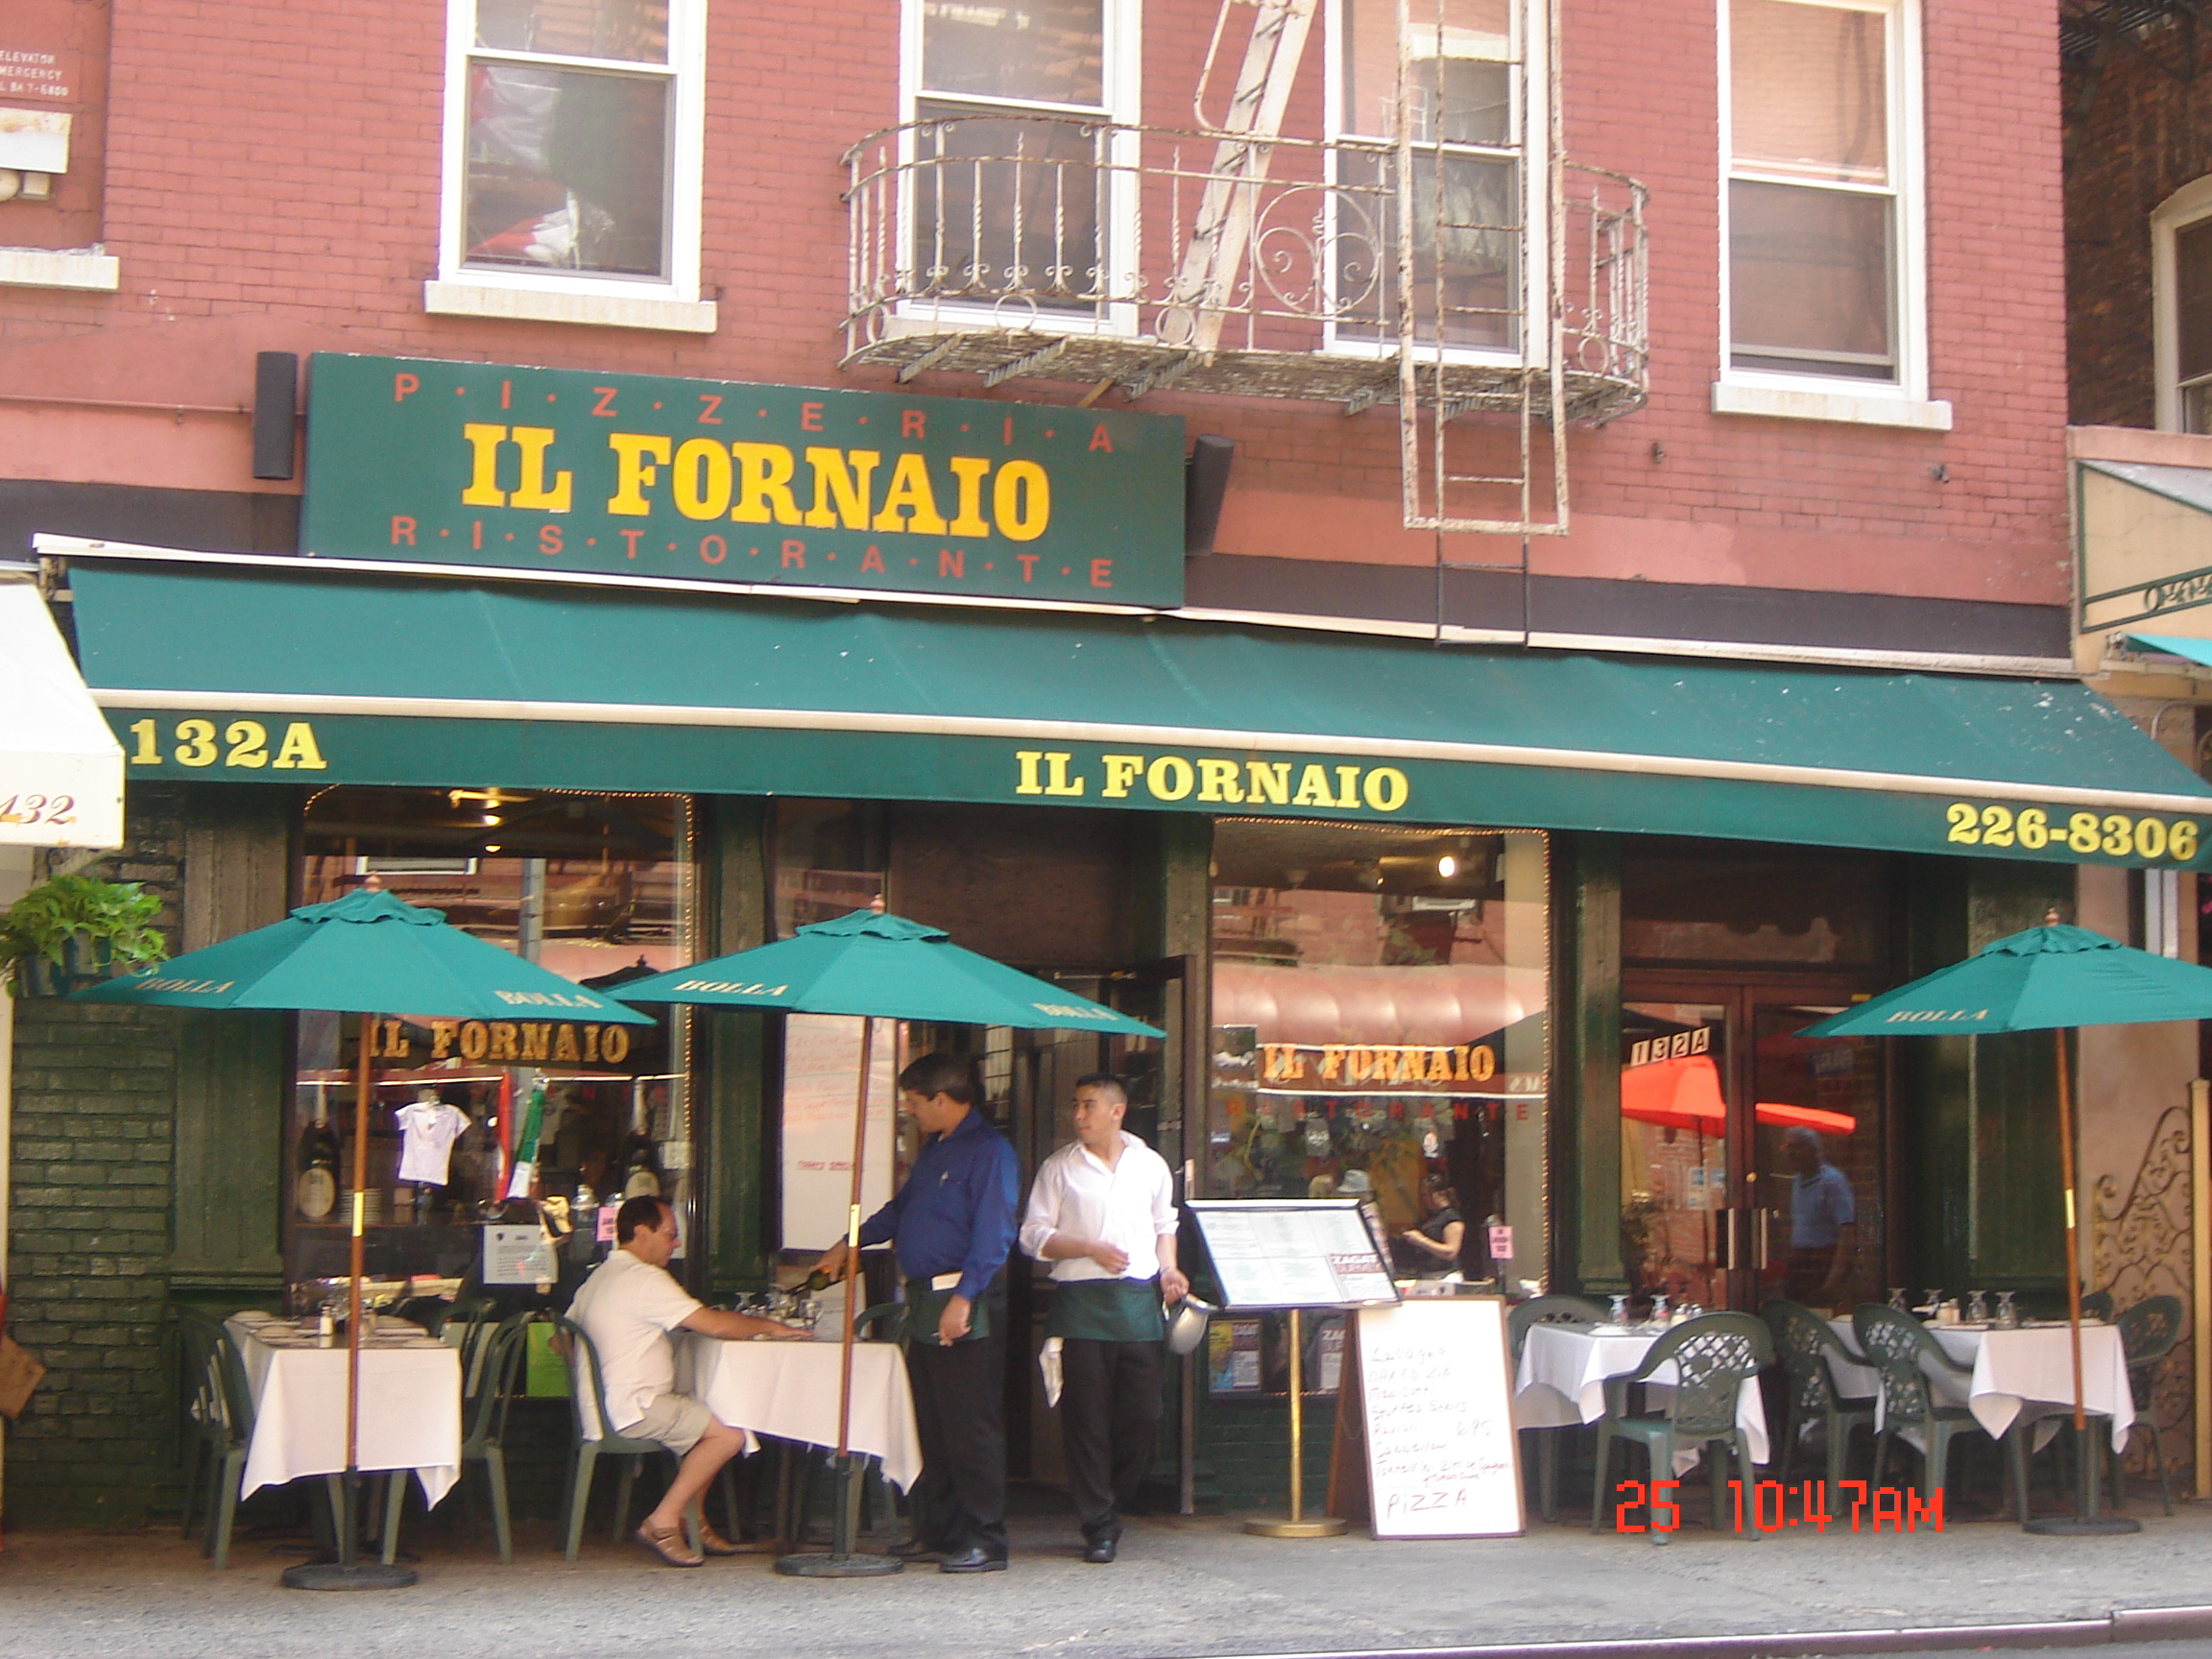 Il fornaio new york Chinatown & Little Italy in New York City